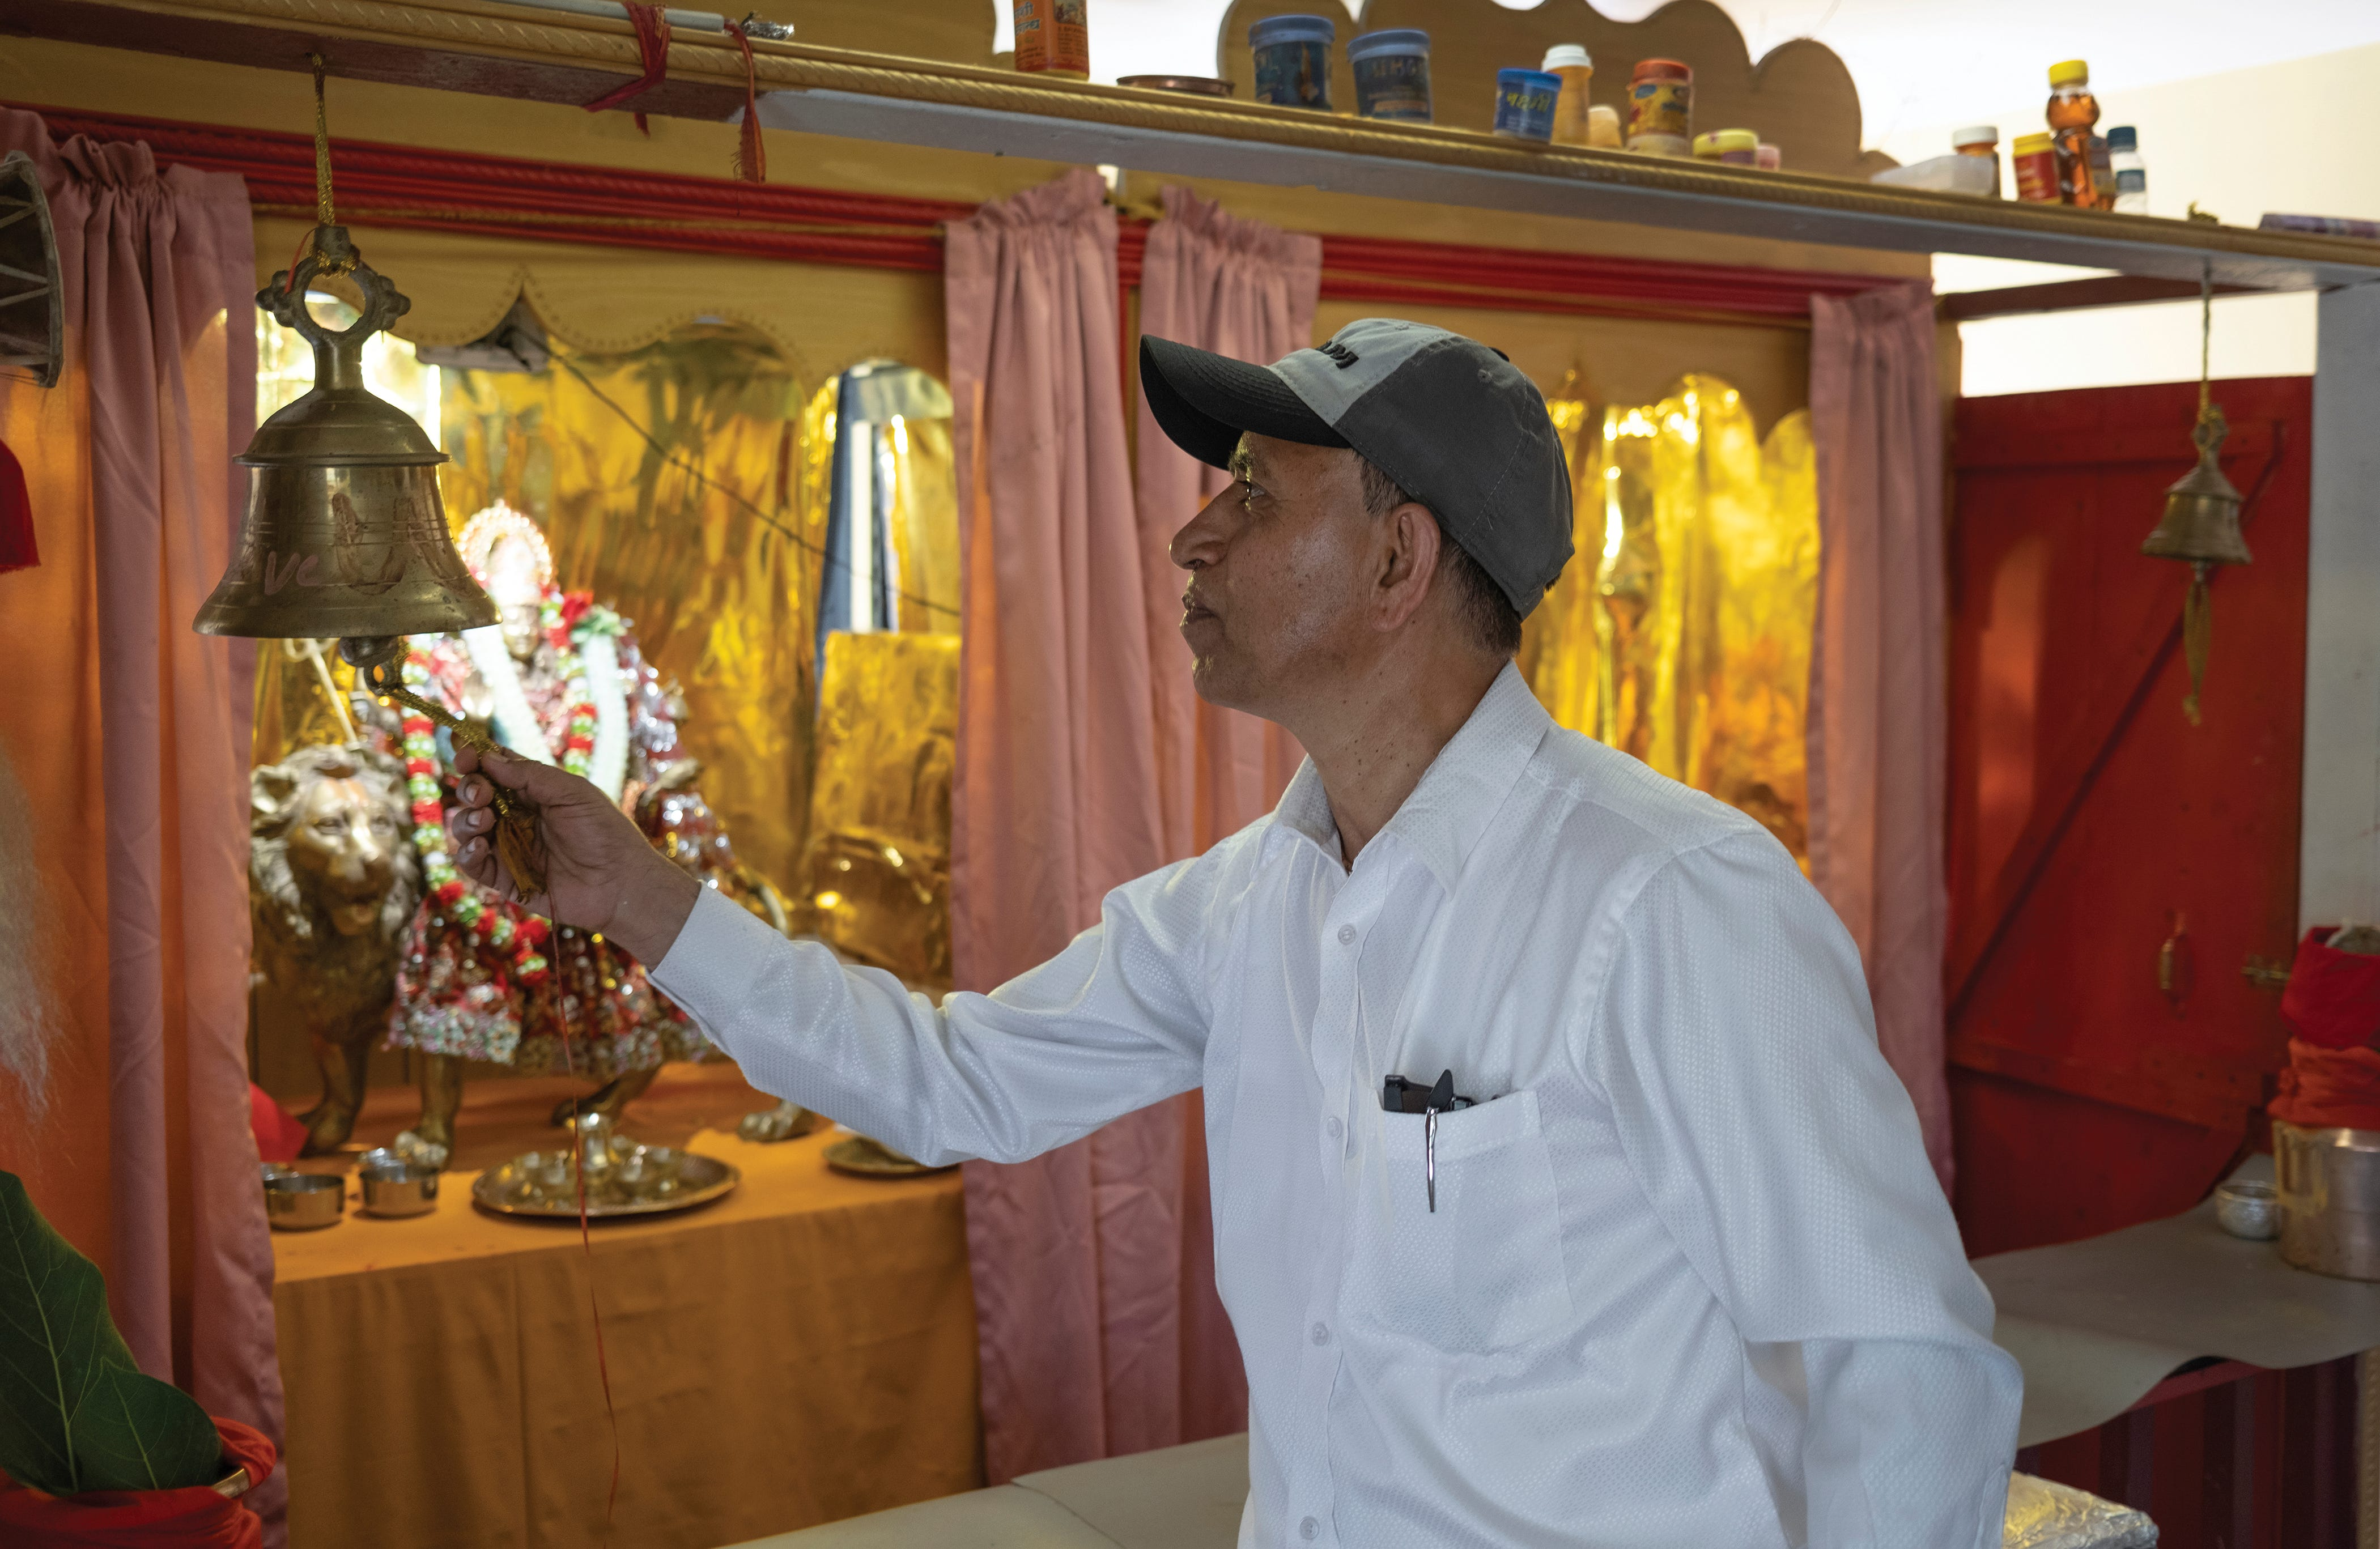 Ram Upreti rings a bell while saying prayers during a Threading Ceremony.